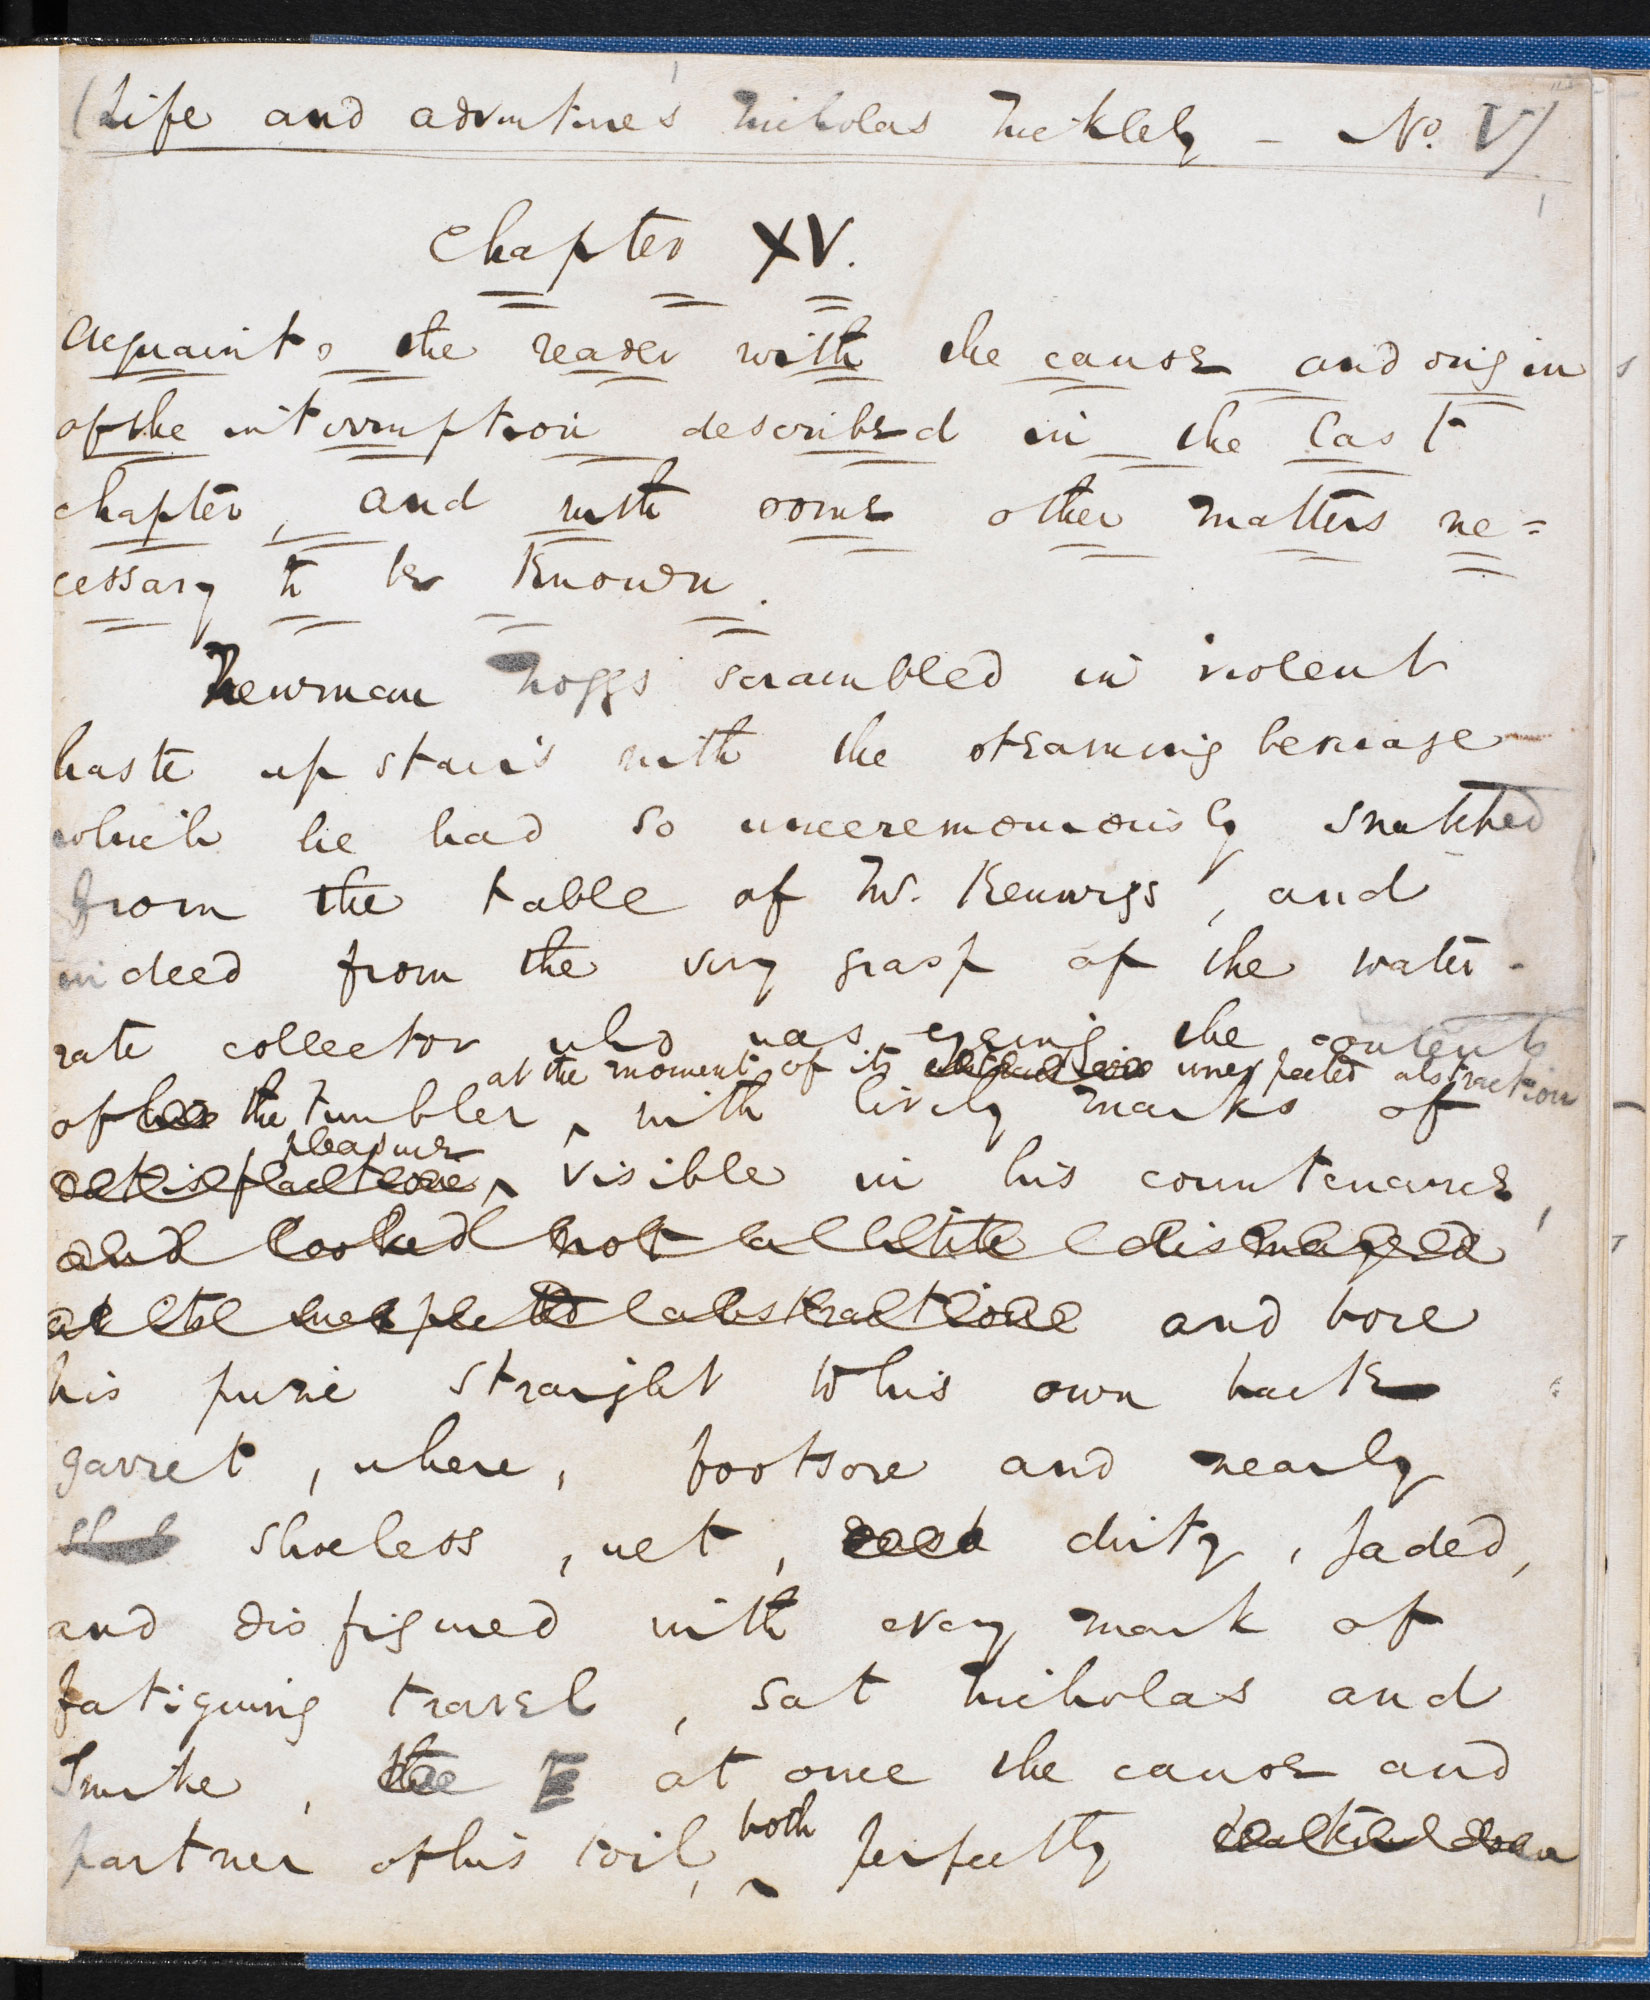 Manuscript of the first part of Chapter 15 from Charles Dickens's Nicholas Nickleby